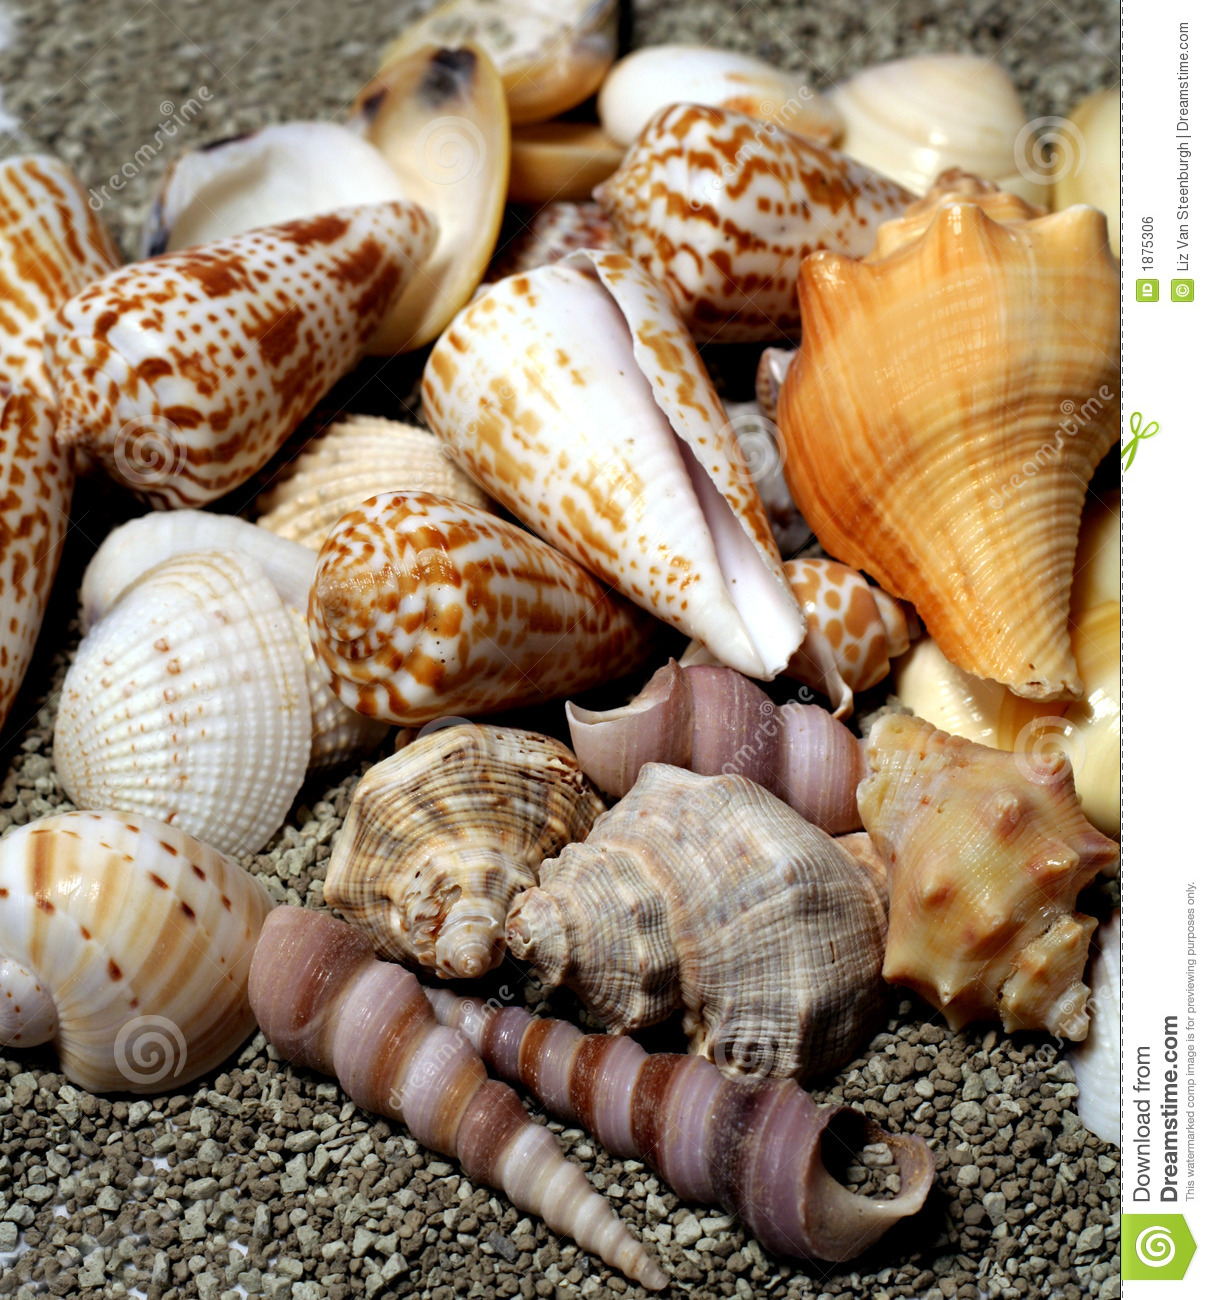 Different shaped seashells on sandy beach background.